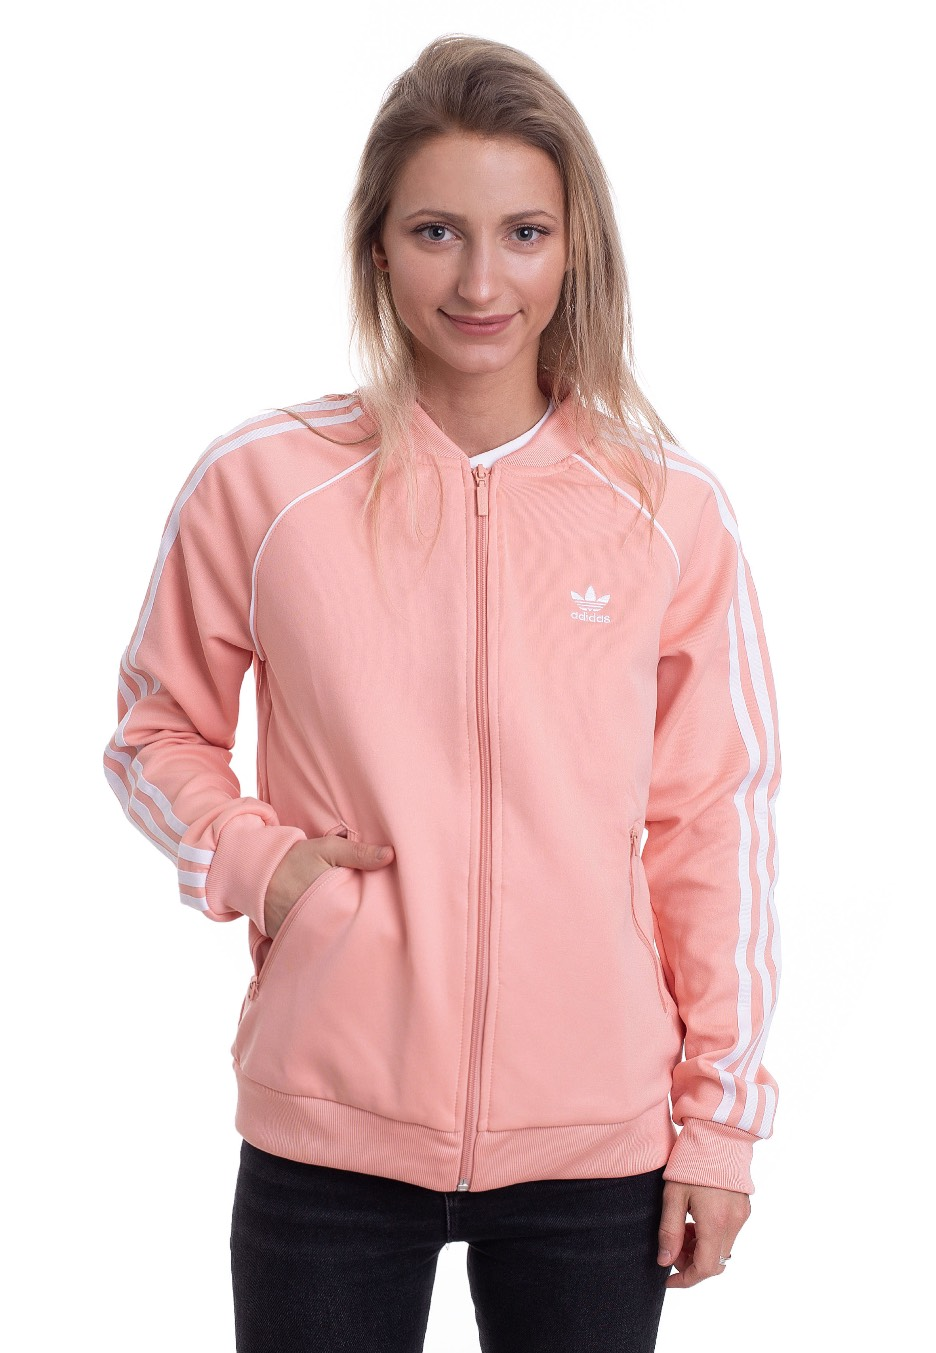 Jacken für Frauen - Adidas SST Dust Pink Jacken  - Onlineshop IMPERICON